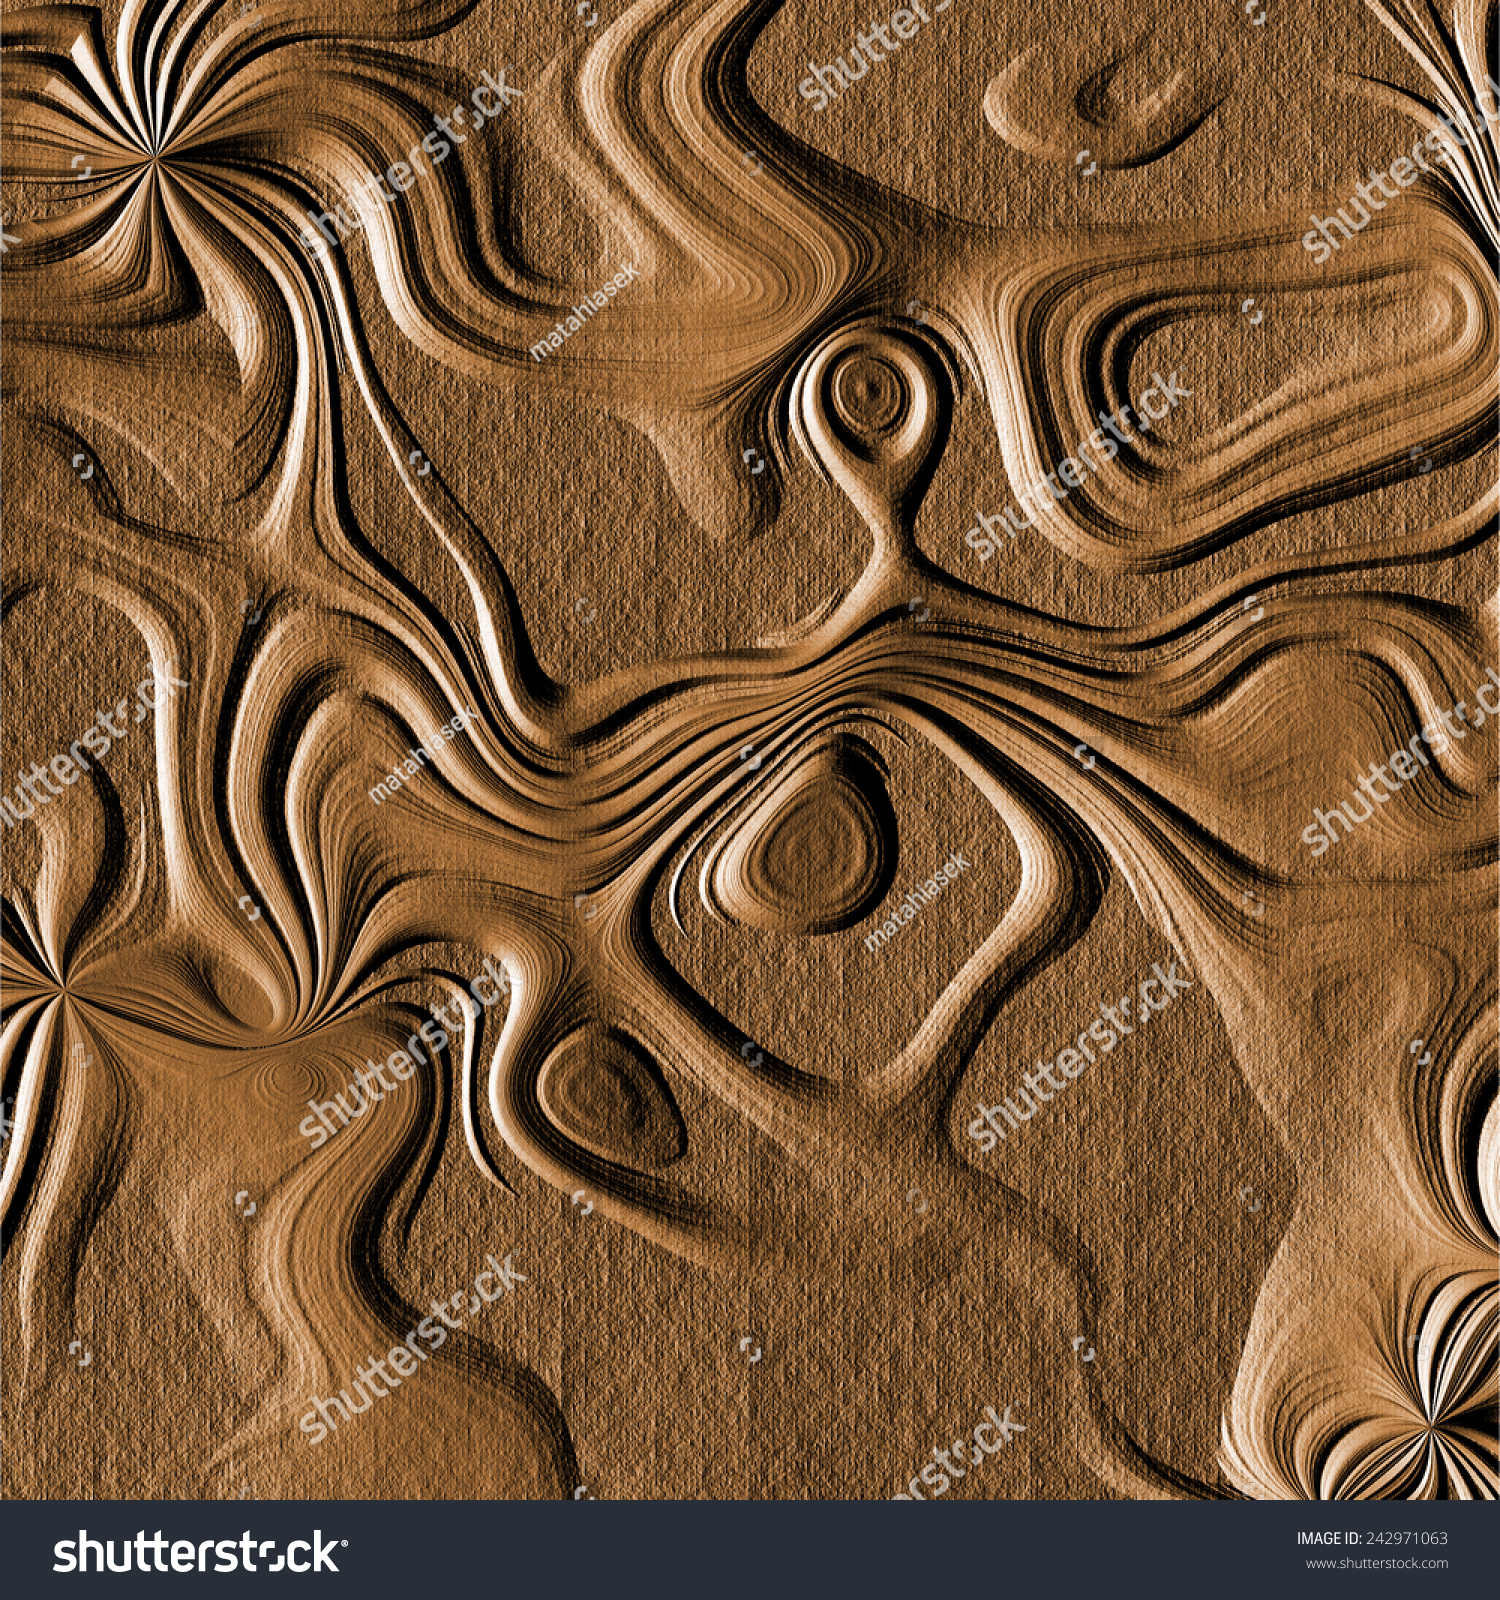 Abstract generated wood carving texture brown stock illustration